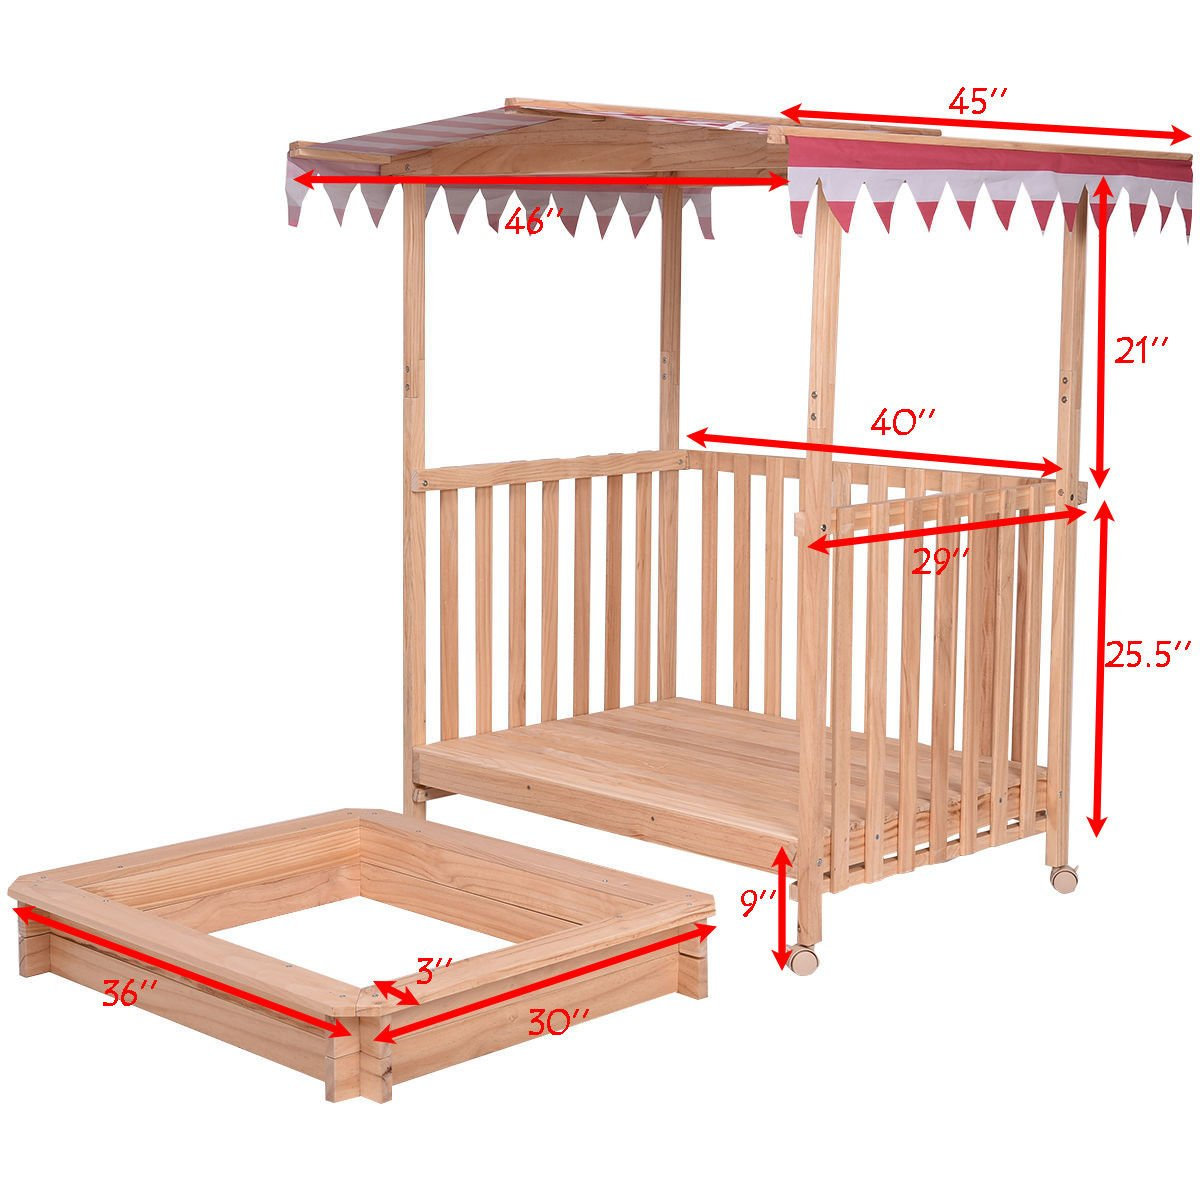 NanaPluz 40'' Fir Wood Kids Beach Cabana Sandbox Children Retractable Playhouse Outdoor Toy Play w/ Red Canopy & 4 Swivel Casters with Ebook by NanaPluz (Image #4)